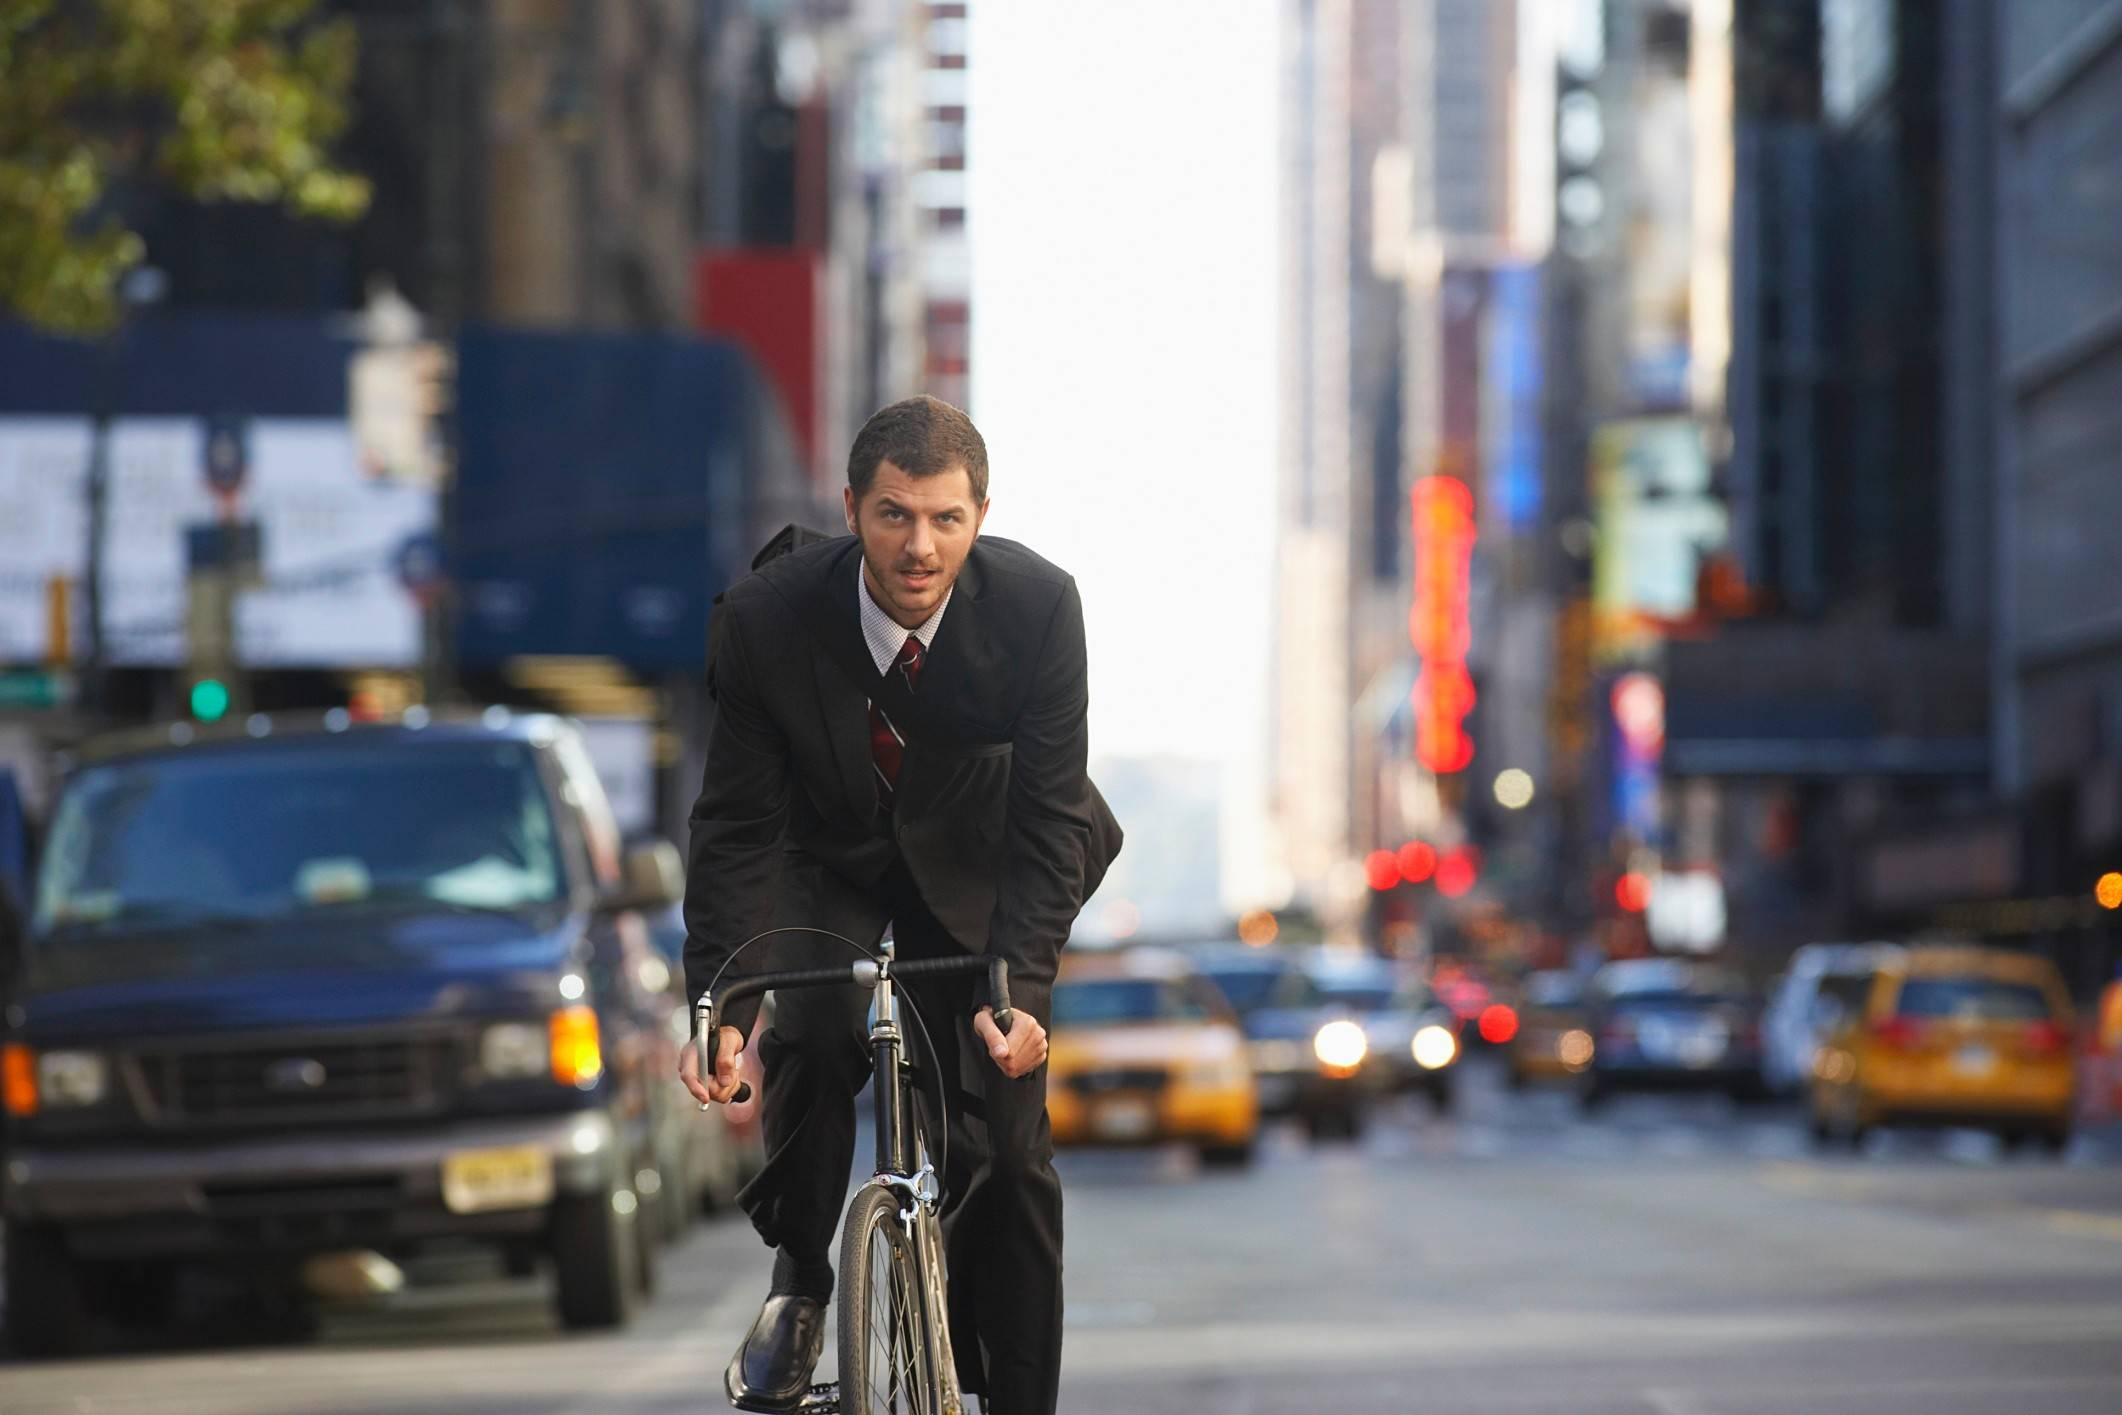 Cycling to work means better health and a longer life